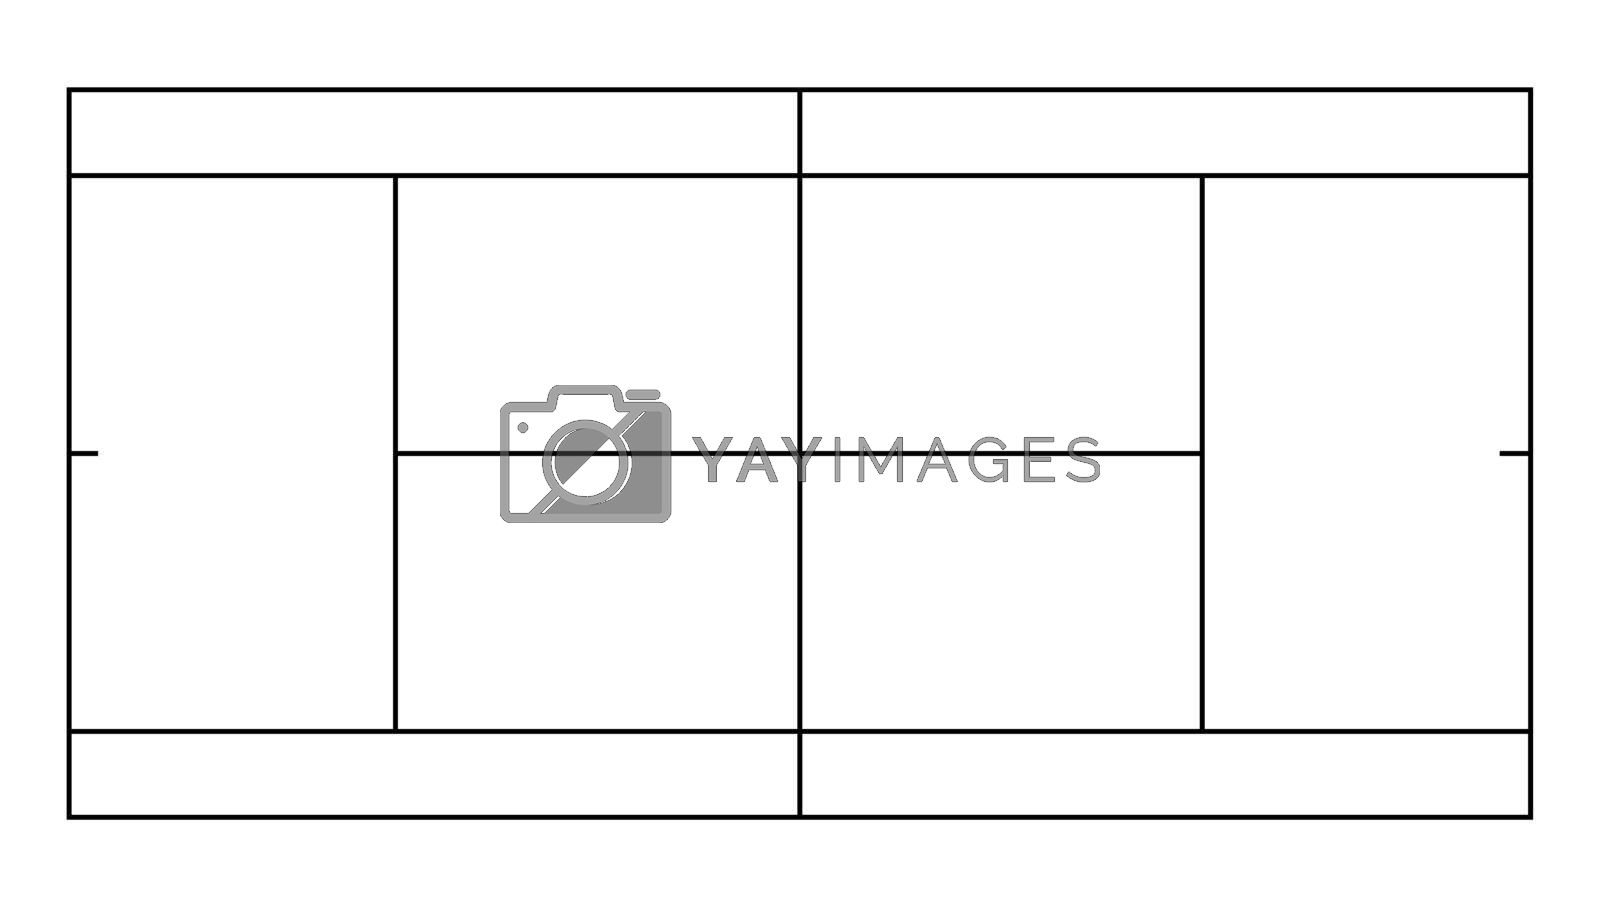 tennis court markings. Grass and ground covering. Outdoor tennis court. Sports ground for active recreation. Vector